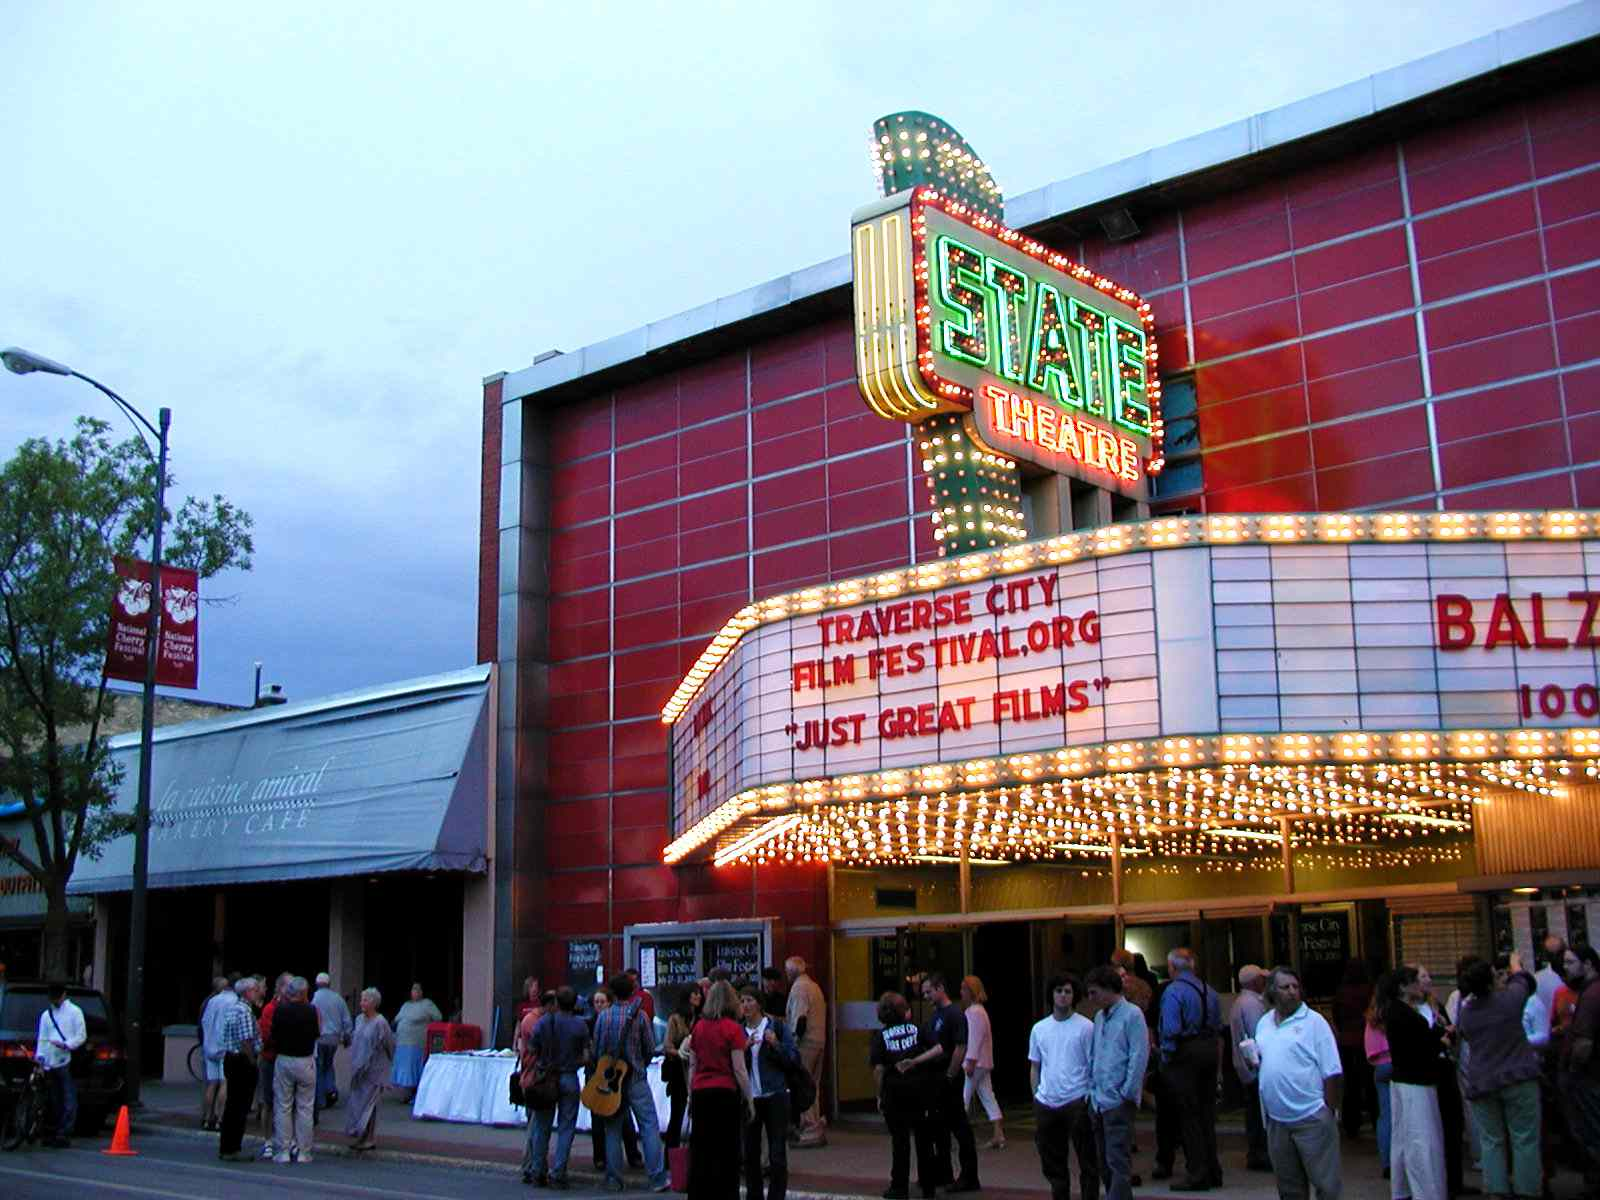 State Theatre in Traverse City Michigan at twilight with people waiting outside